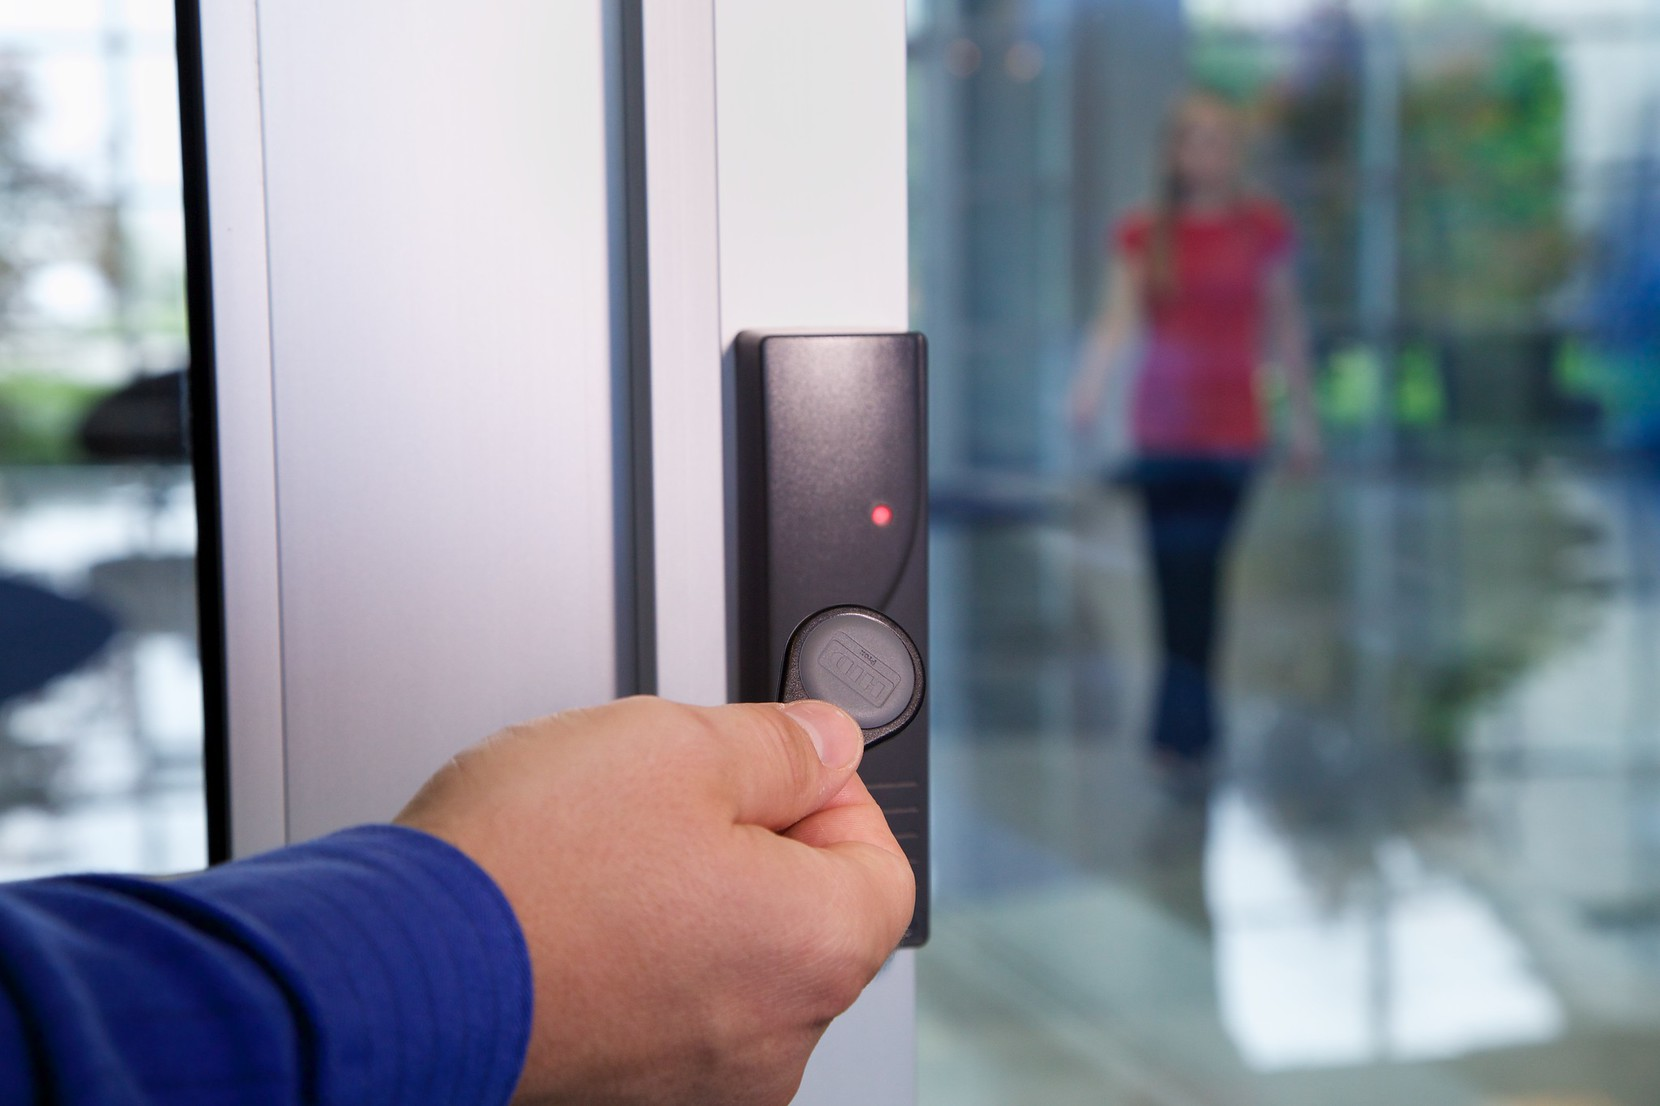 FOB based access control system in action.